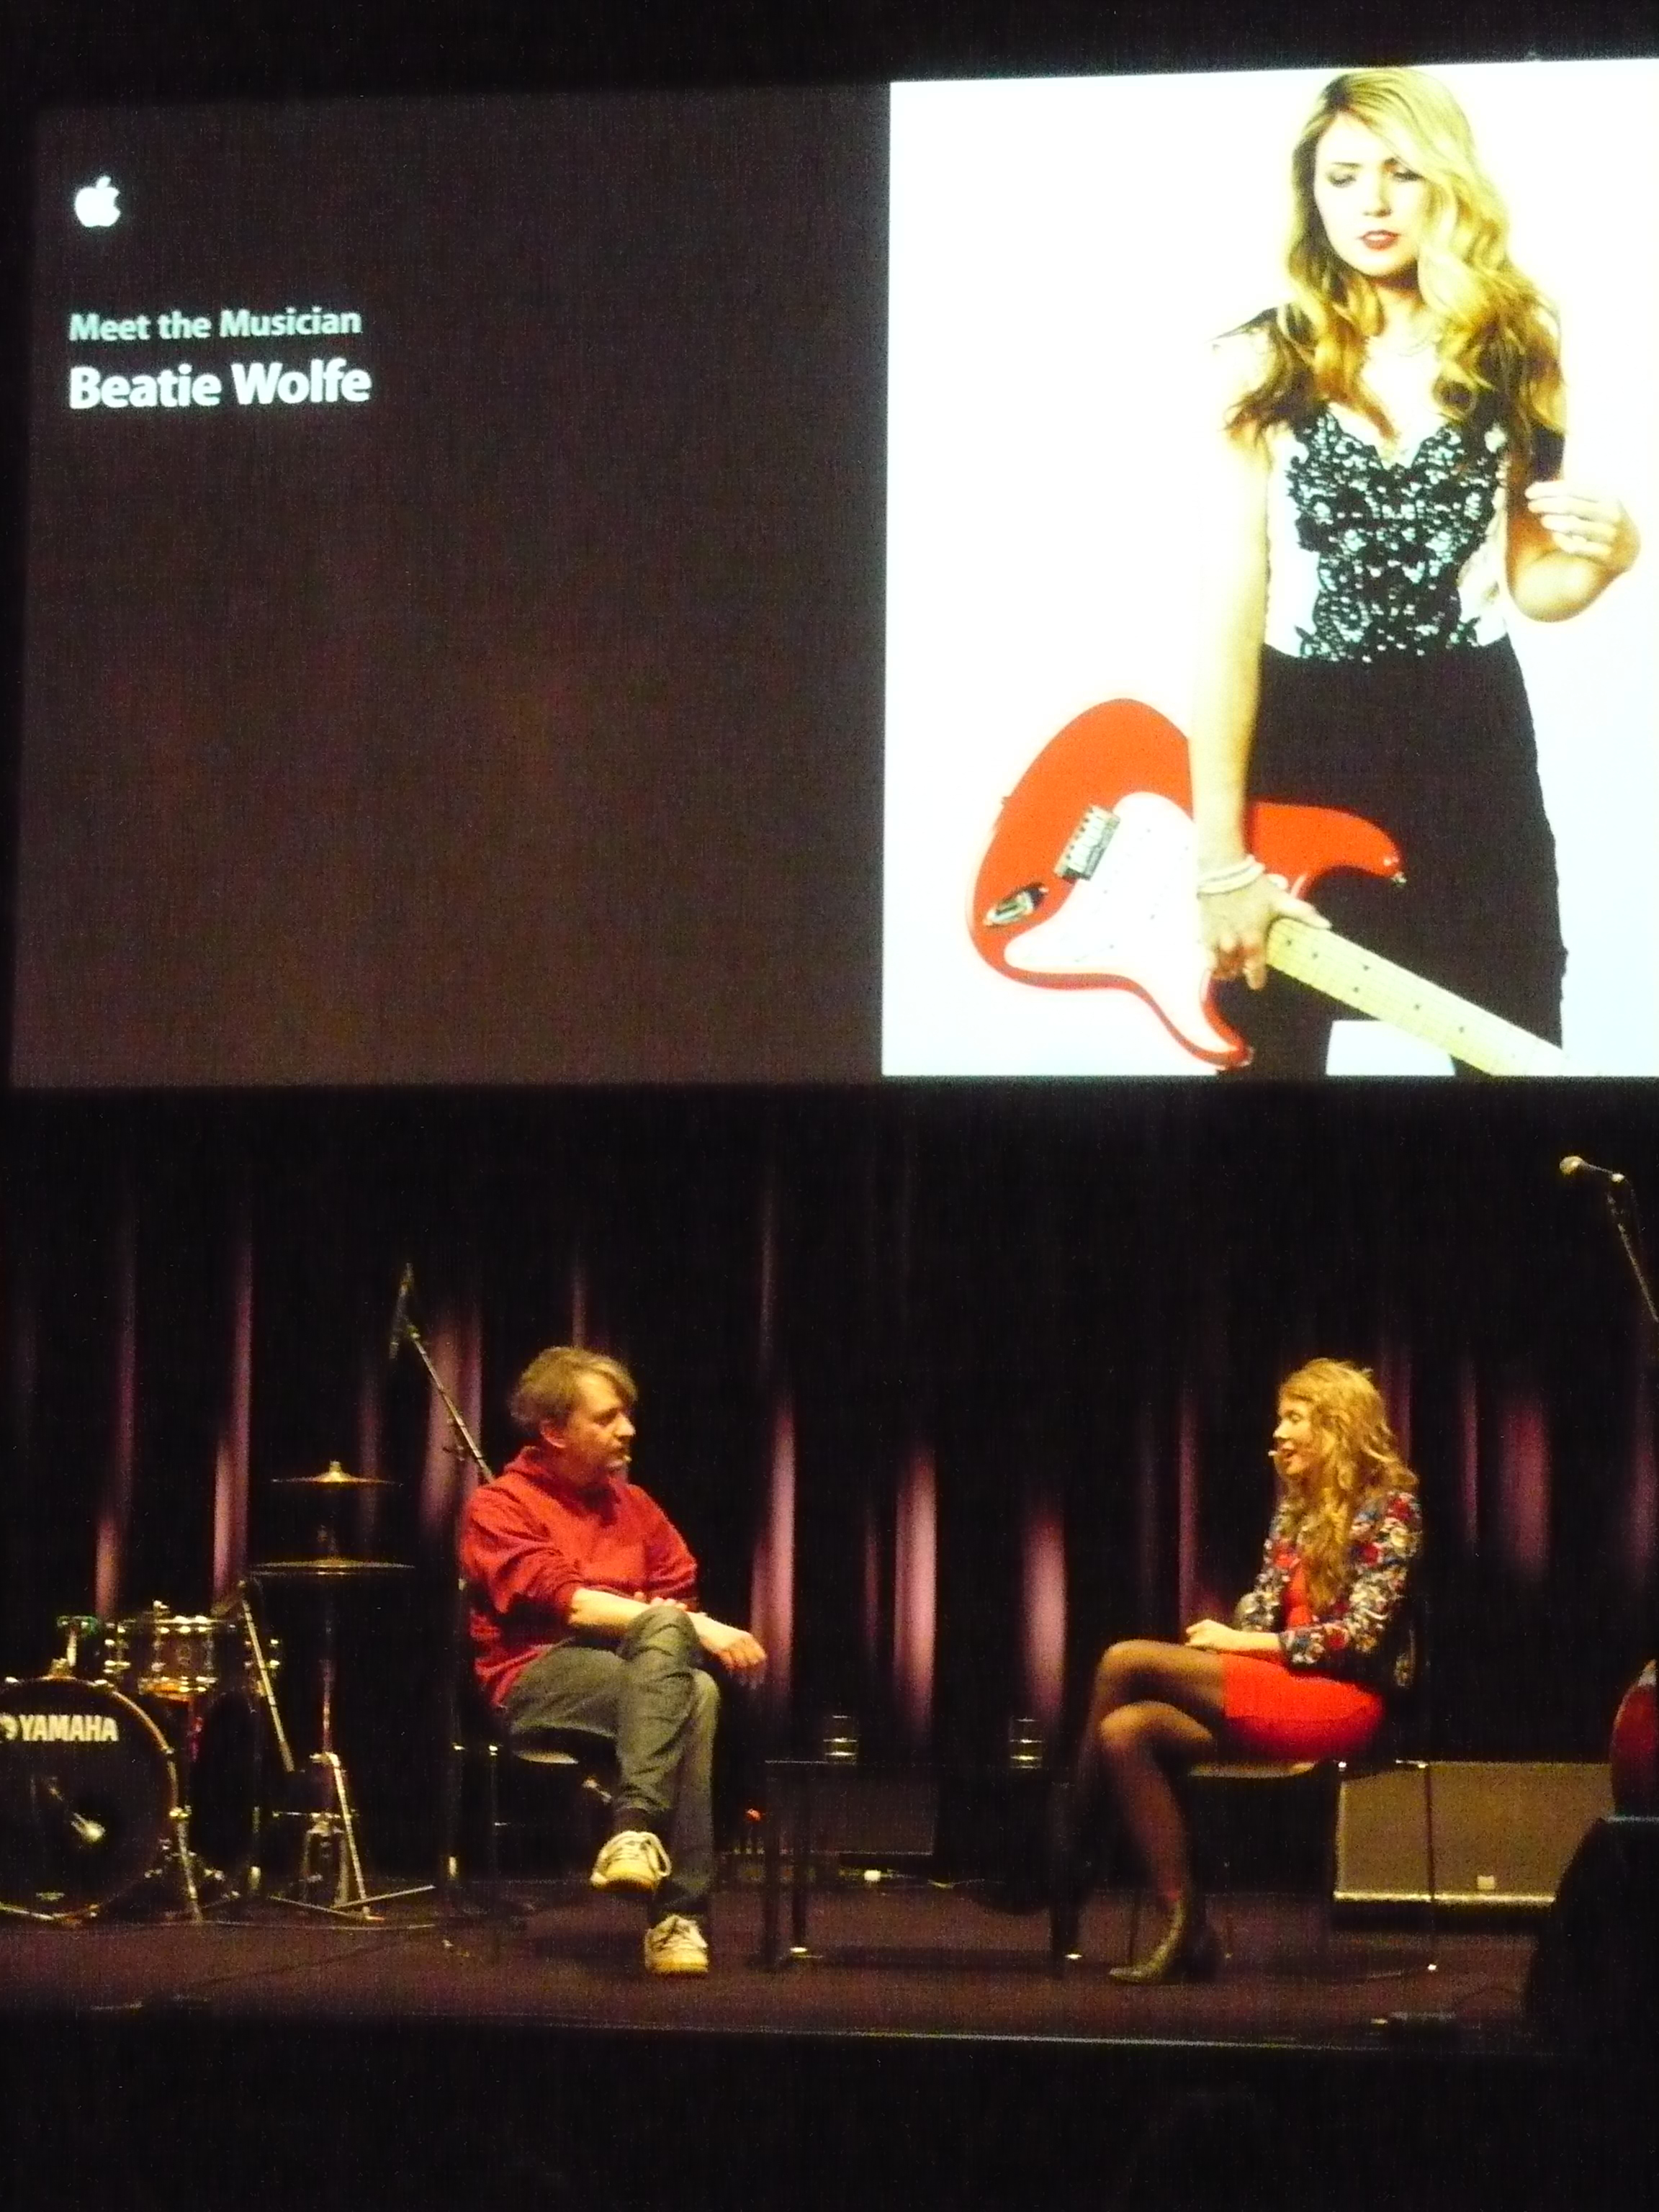 Beatie Wolfe and De:Bug's Editor Sacha Kösch